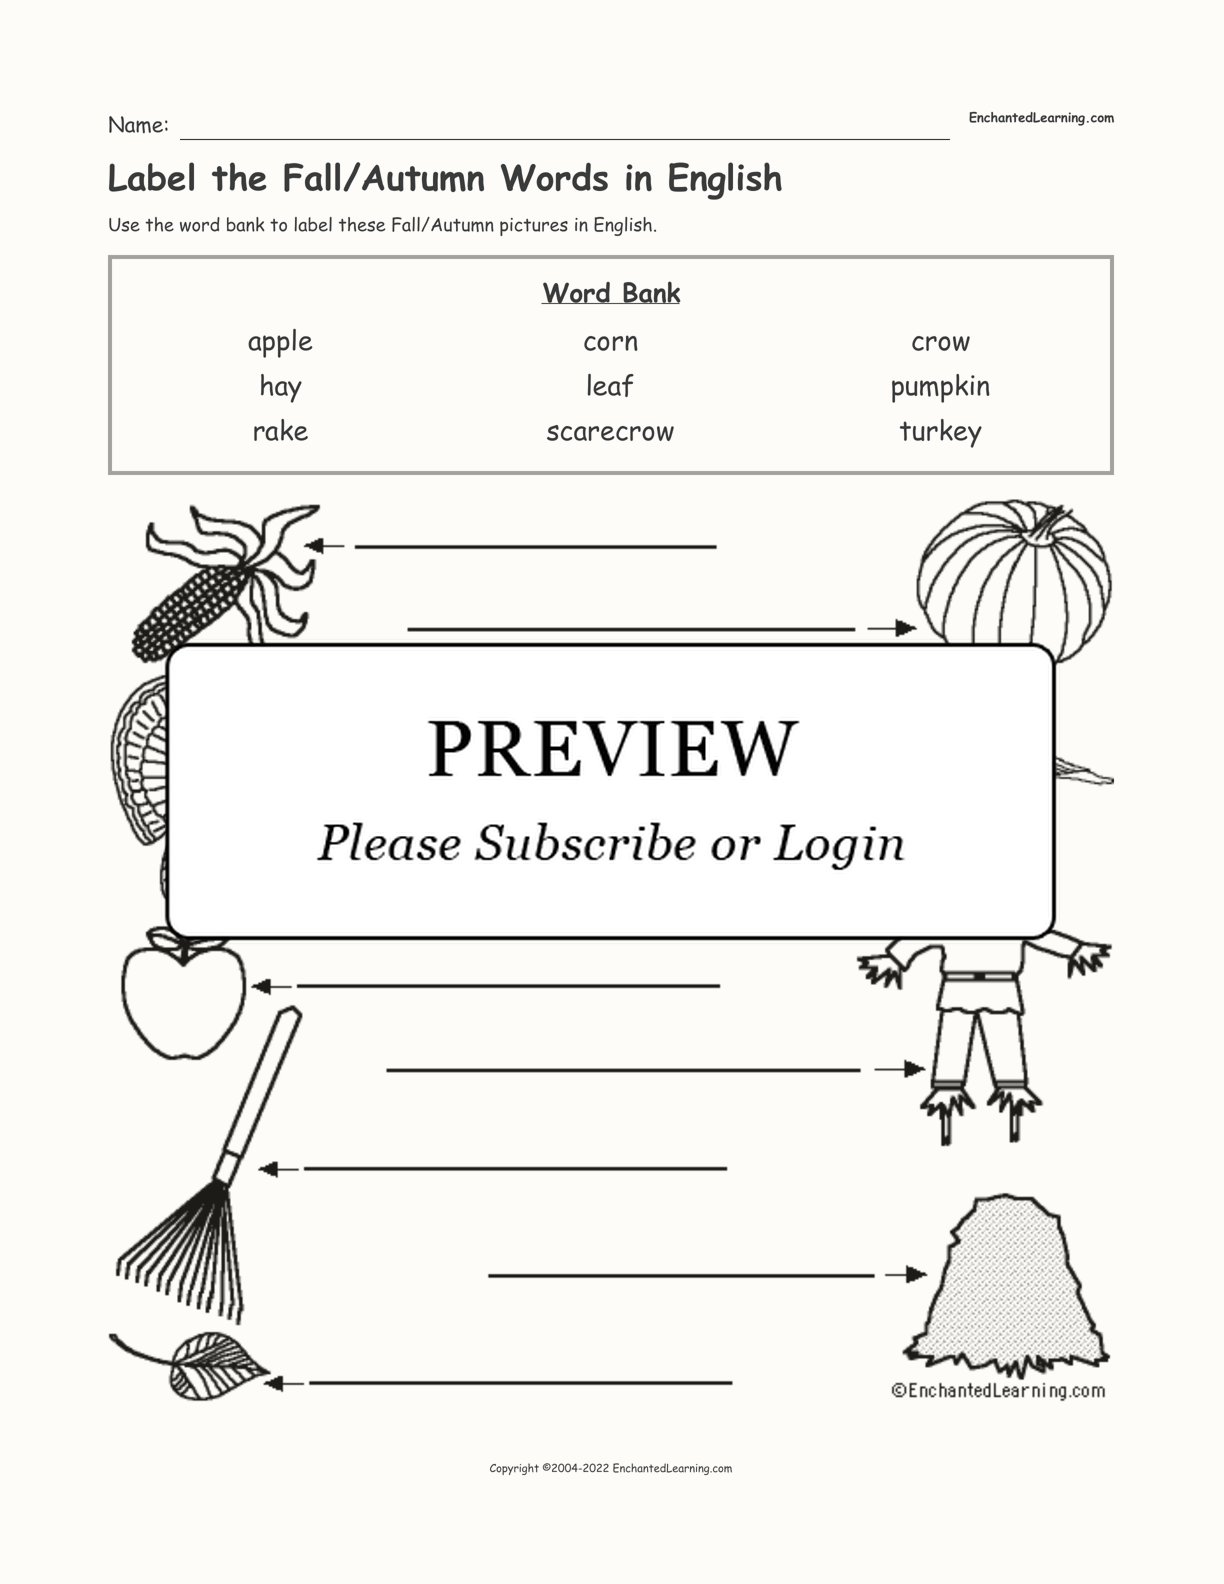 Label the Fall/Autumn Words in English interactive worksheet page 1